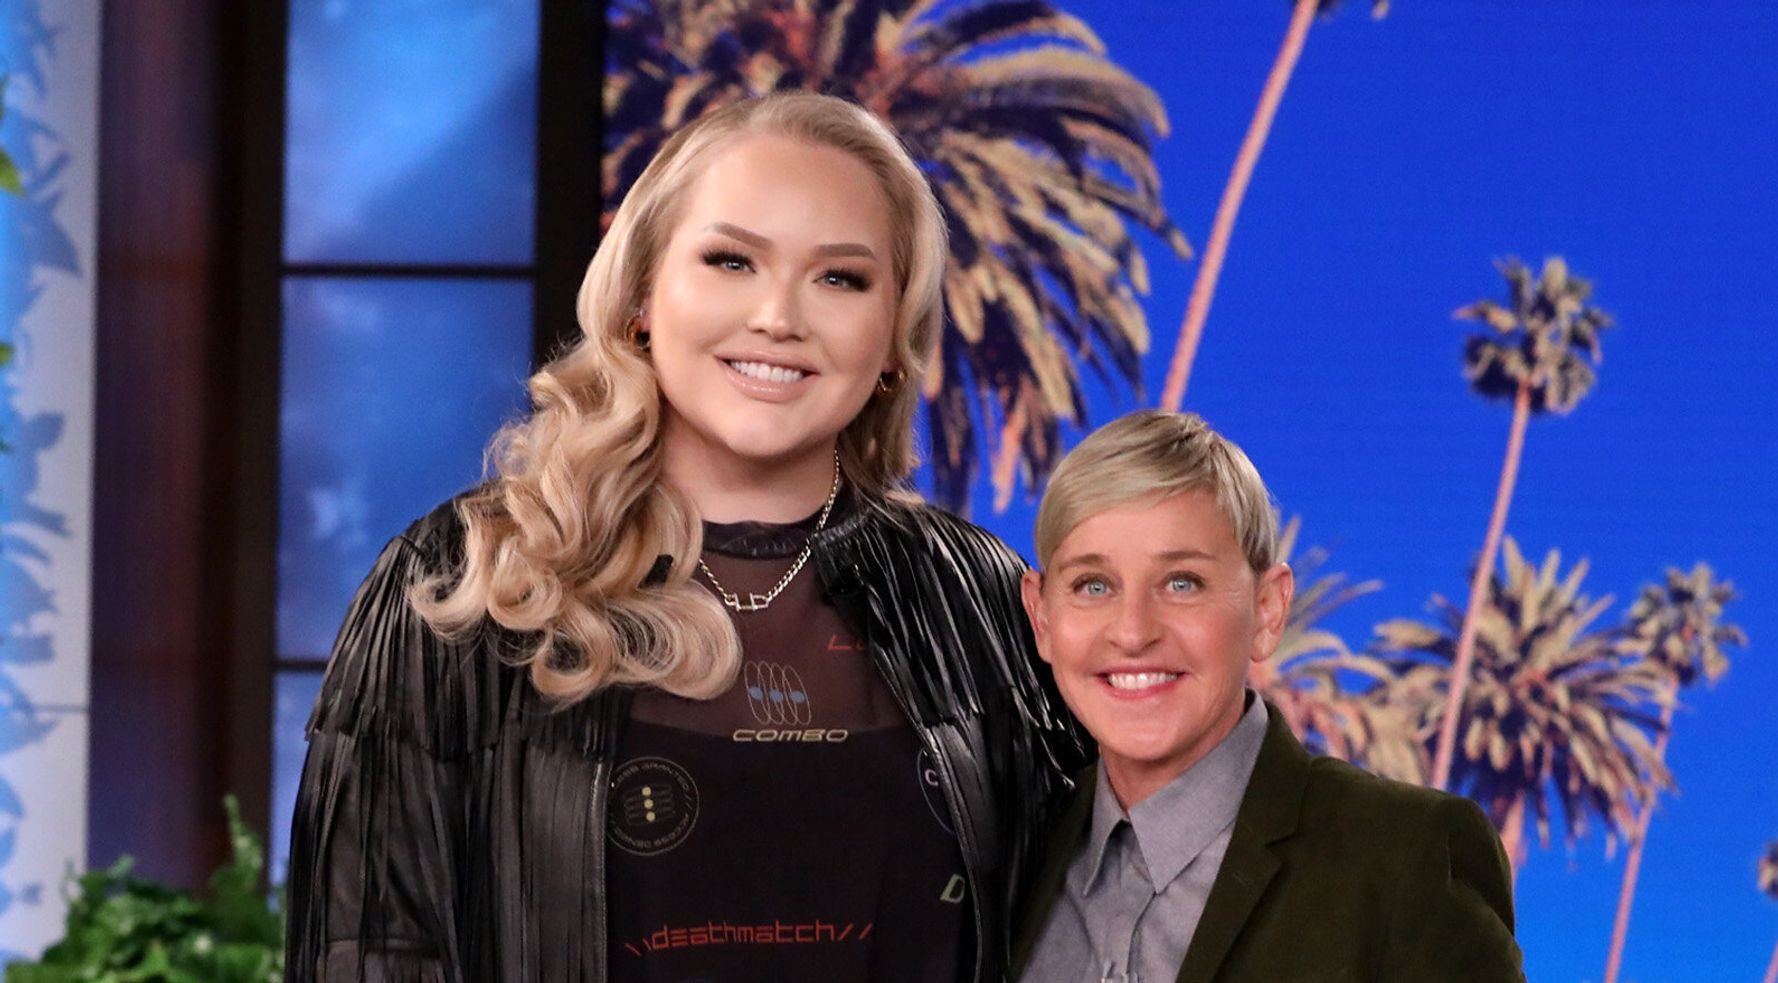 Westlake Legal Group 5e28631a2100007802ffff7b YouTuber NikkieTutorials: 'There's Never The Perfect Timing' To Come Out As Transgender